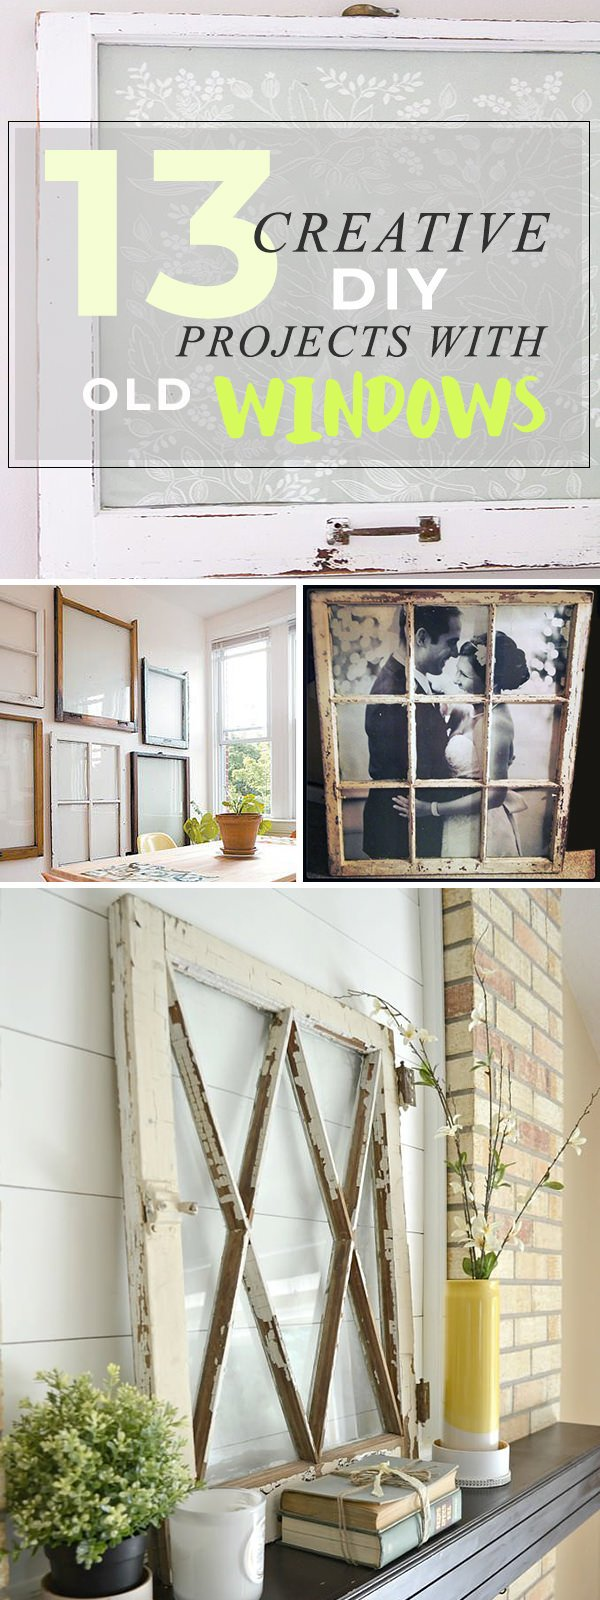 13 Creative DIY Projects with Old Windows • The Budget Decorator